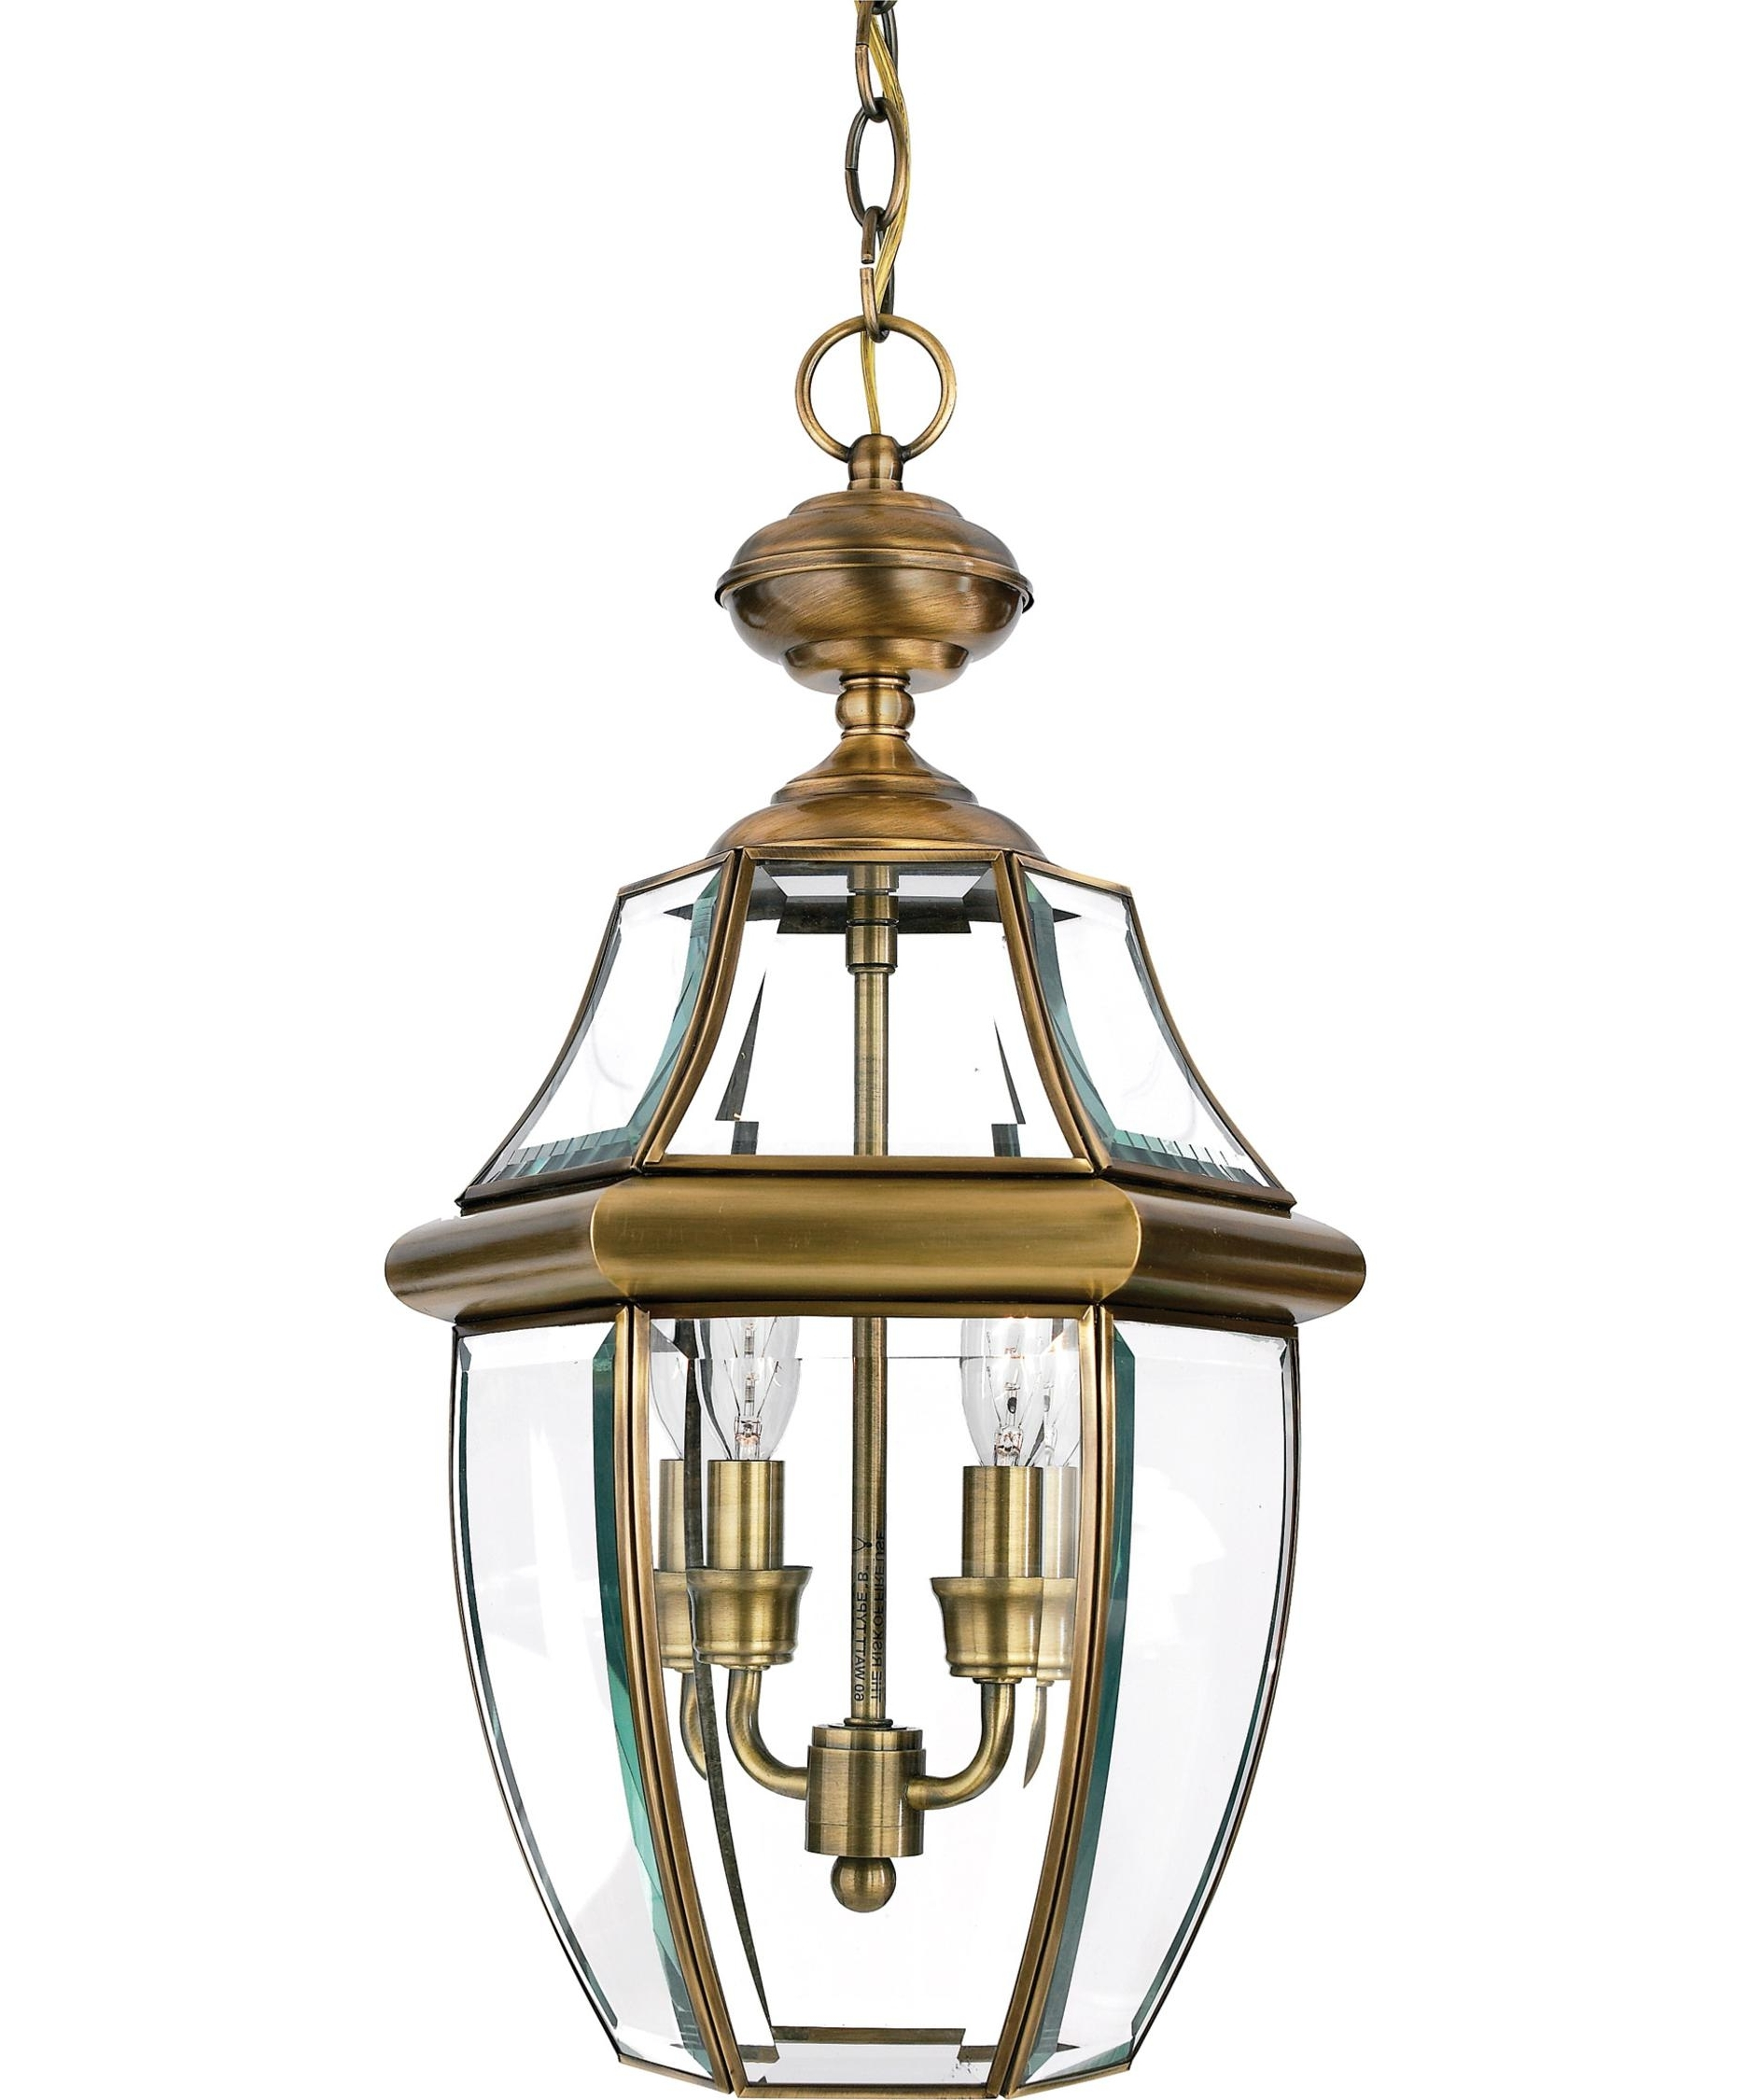 Quoizel Ny1178 Newbury 10 Inch Wide 2 Light Outdoor Hanging Lantern For Popular Gold Outdoor Lanterns (View 18 of 20)